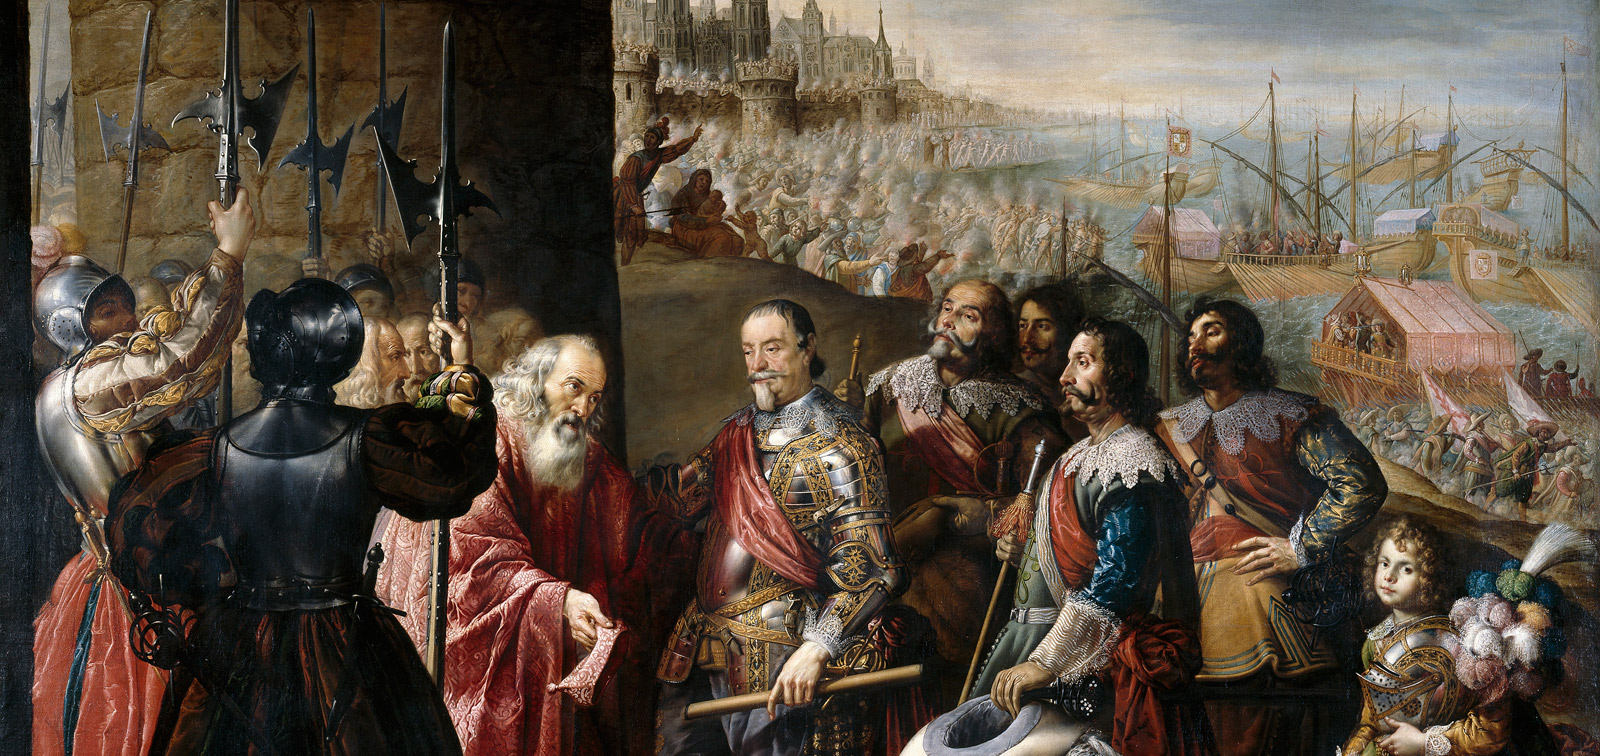 The Art of Power. The Royal Armoury and court portraiture